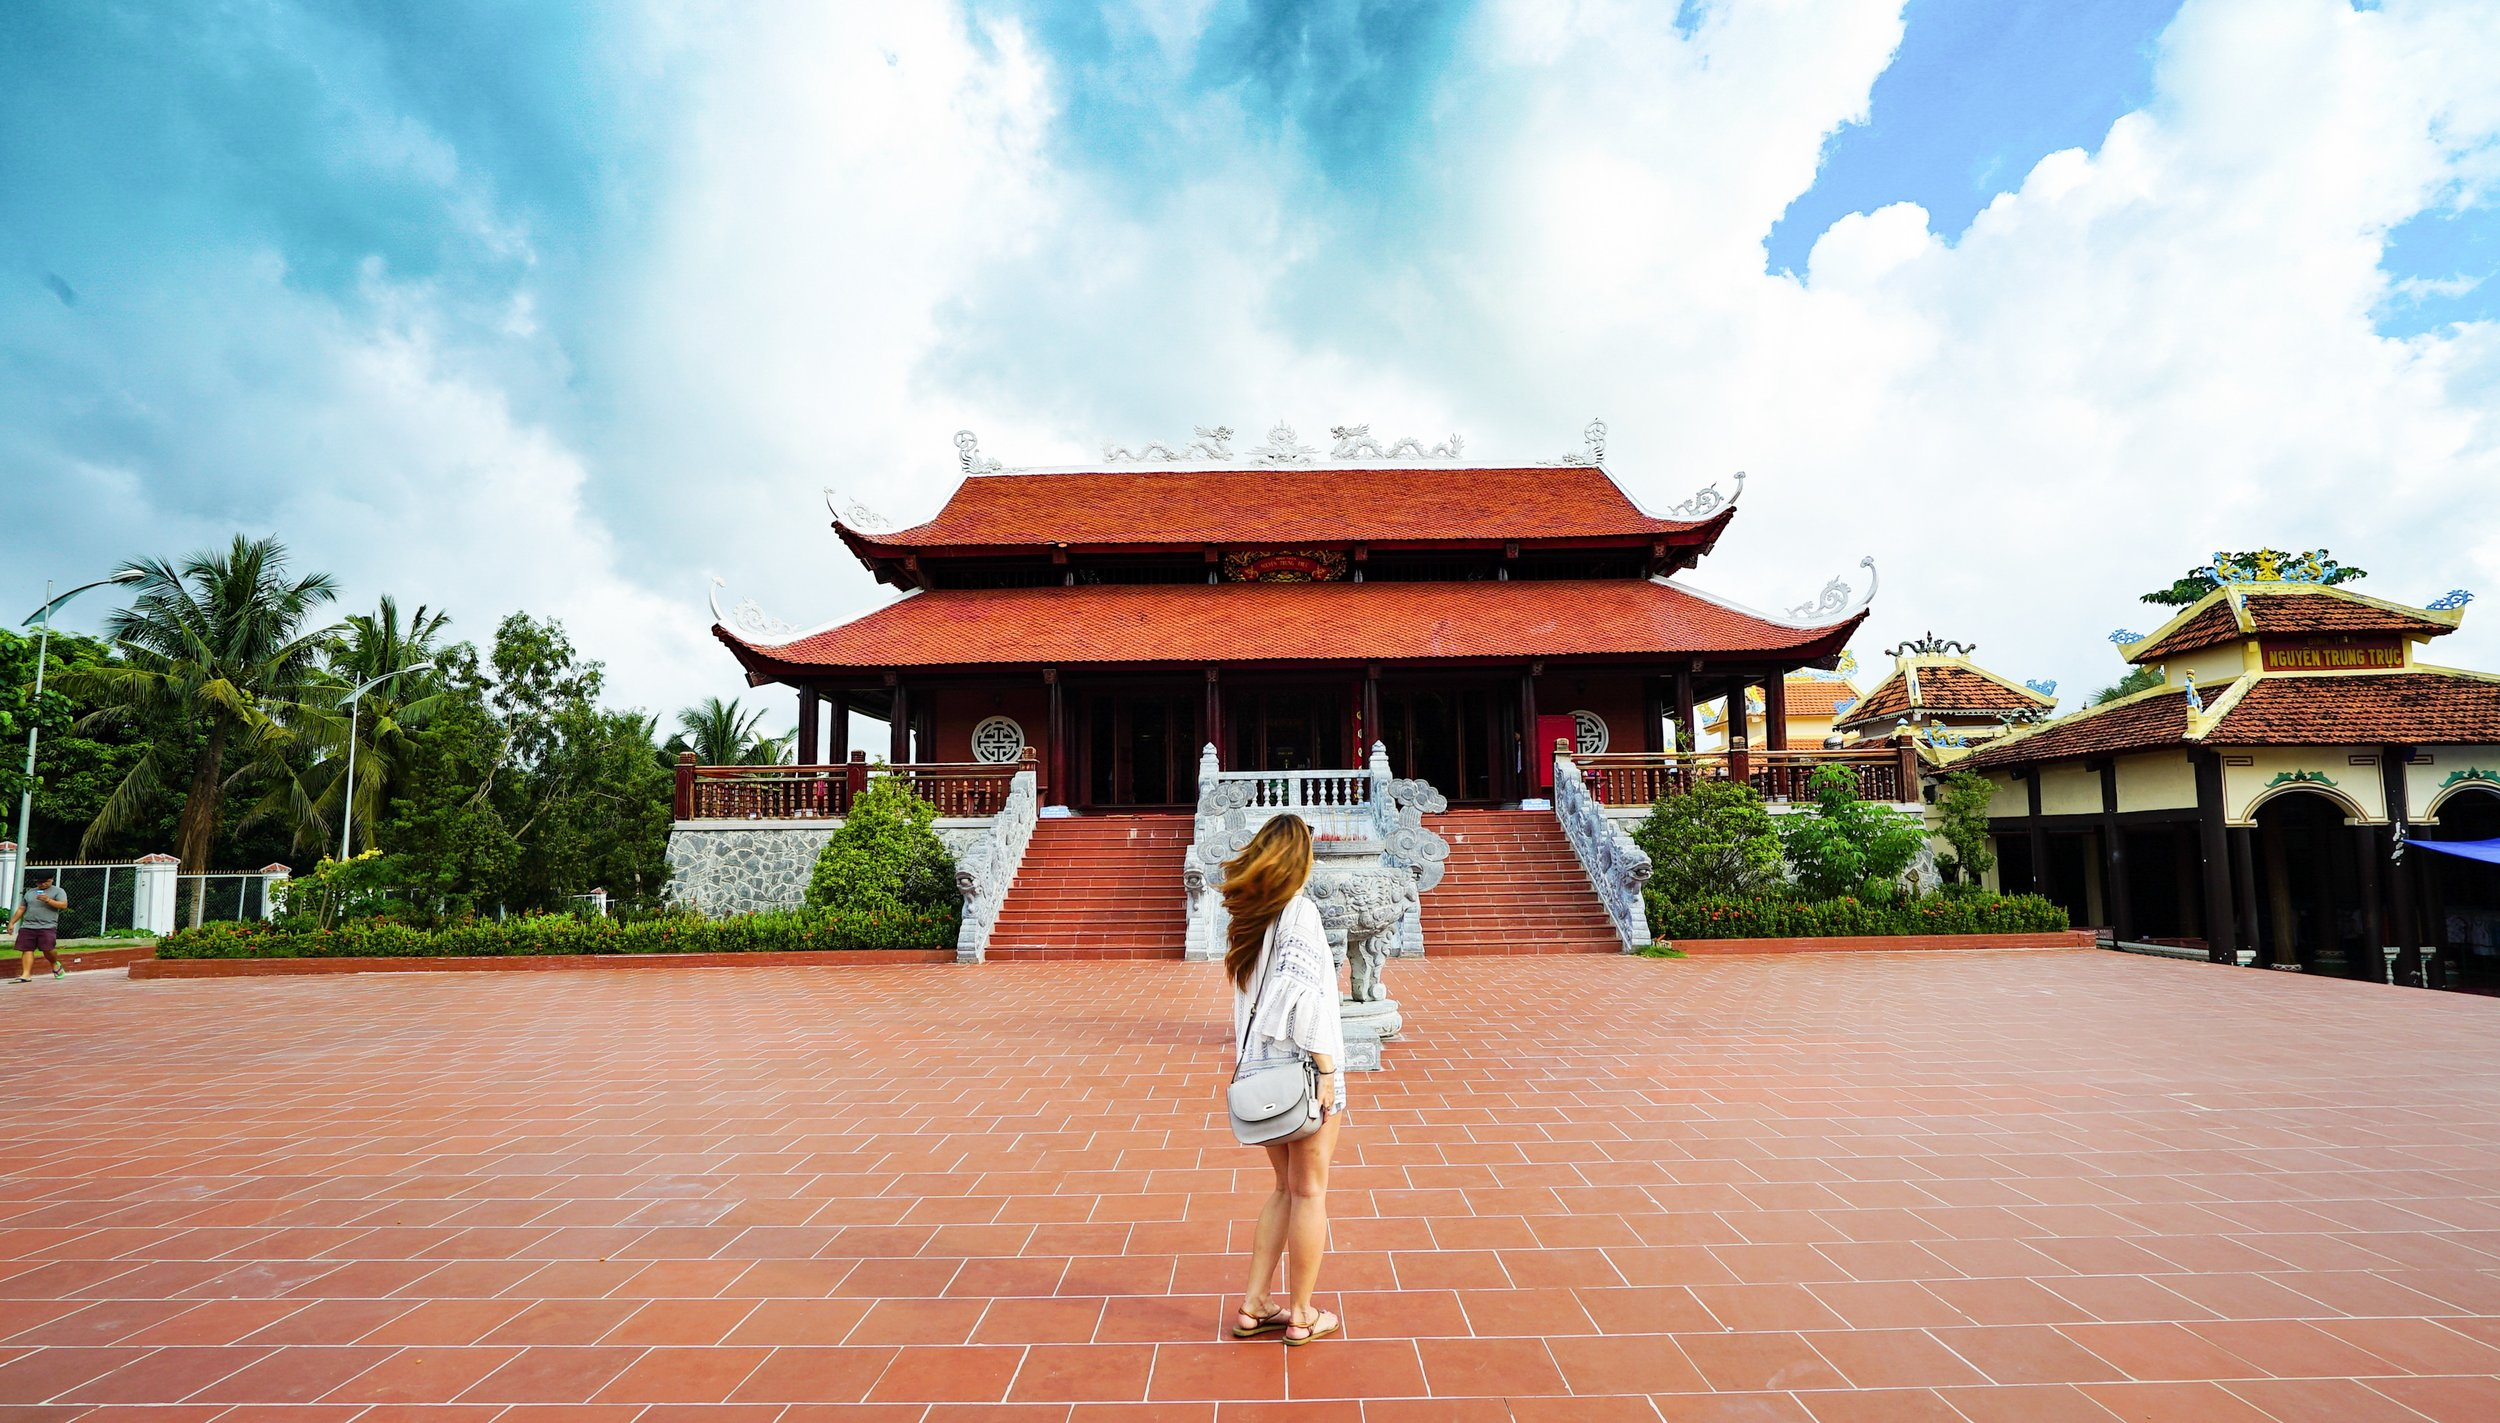 The Trung Truc Temple is one of the best things to do in Phu Quoc, Vietnam